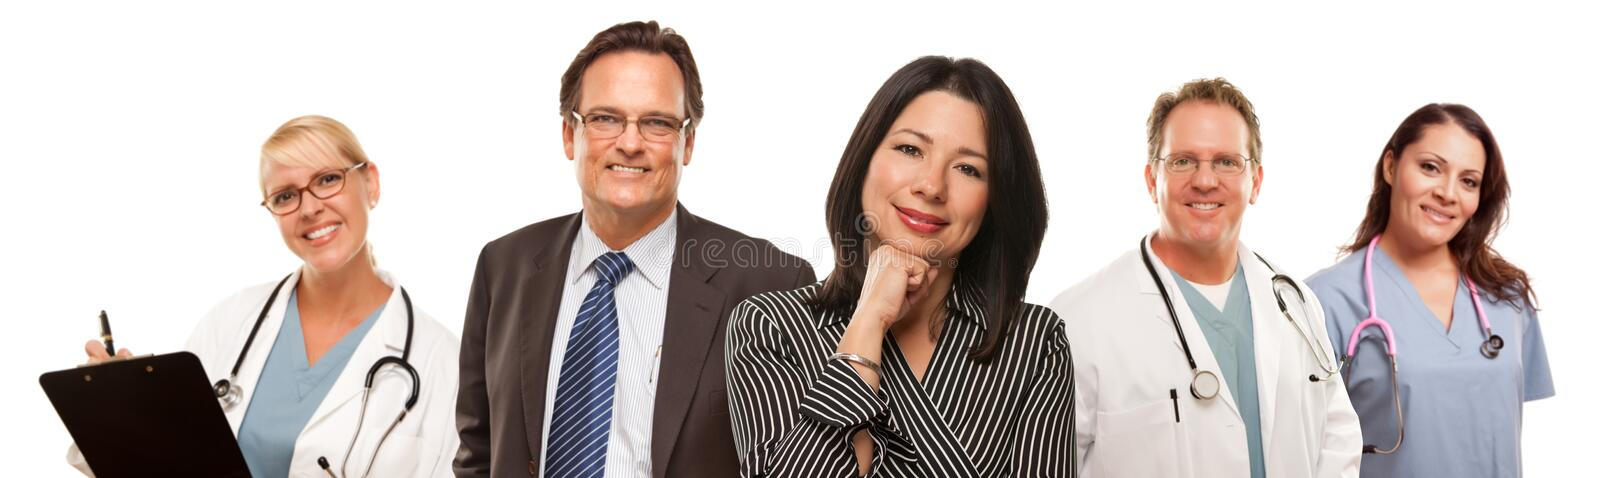 Hispanic Woman with Businessman and Male Doctors stock images